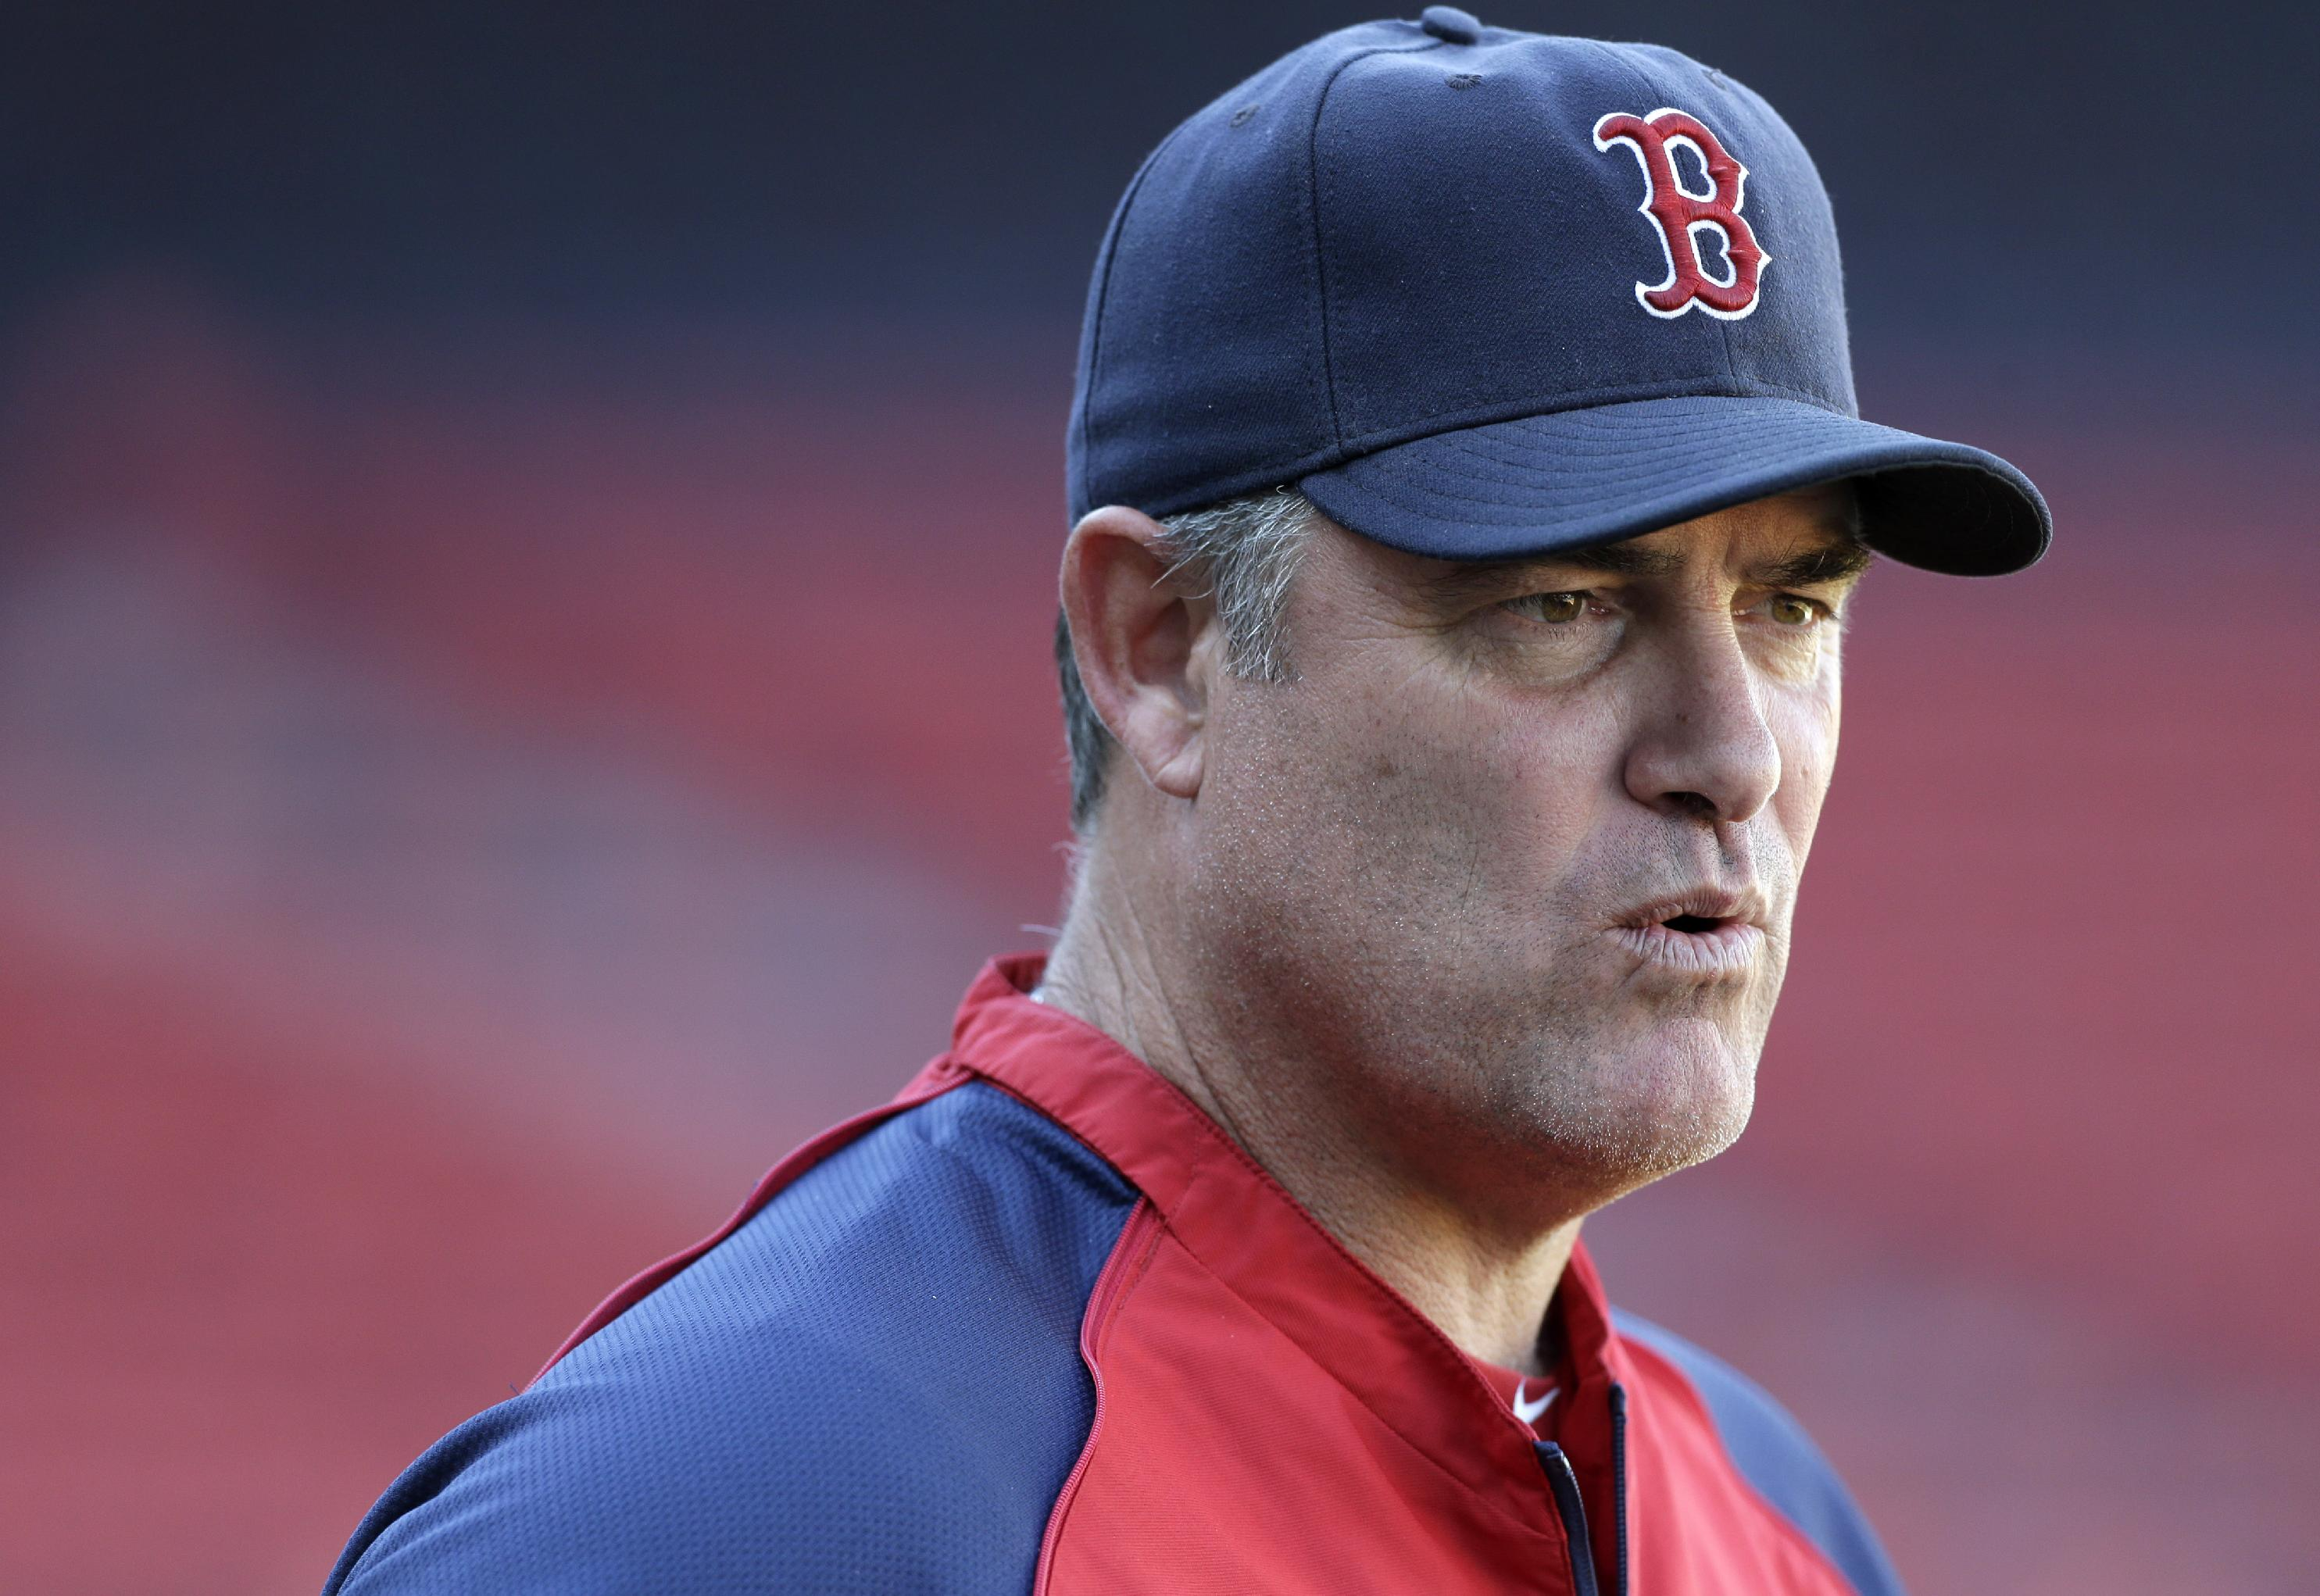 John Farrell guided the Red Sox to their best record in the American League this season. (AP)